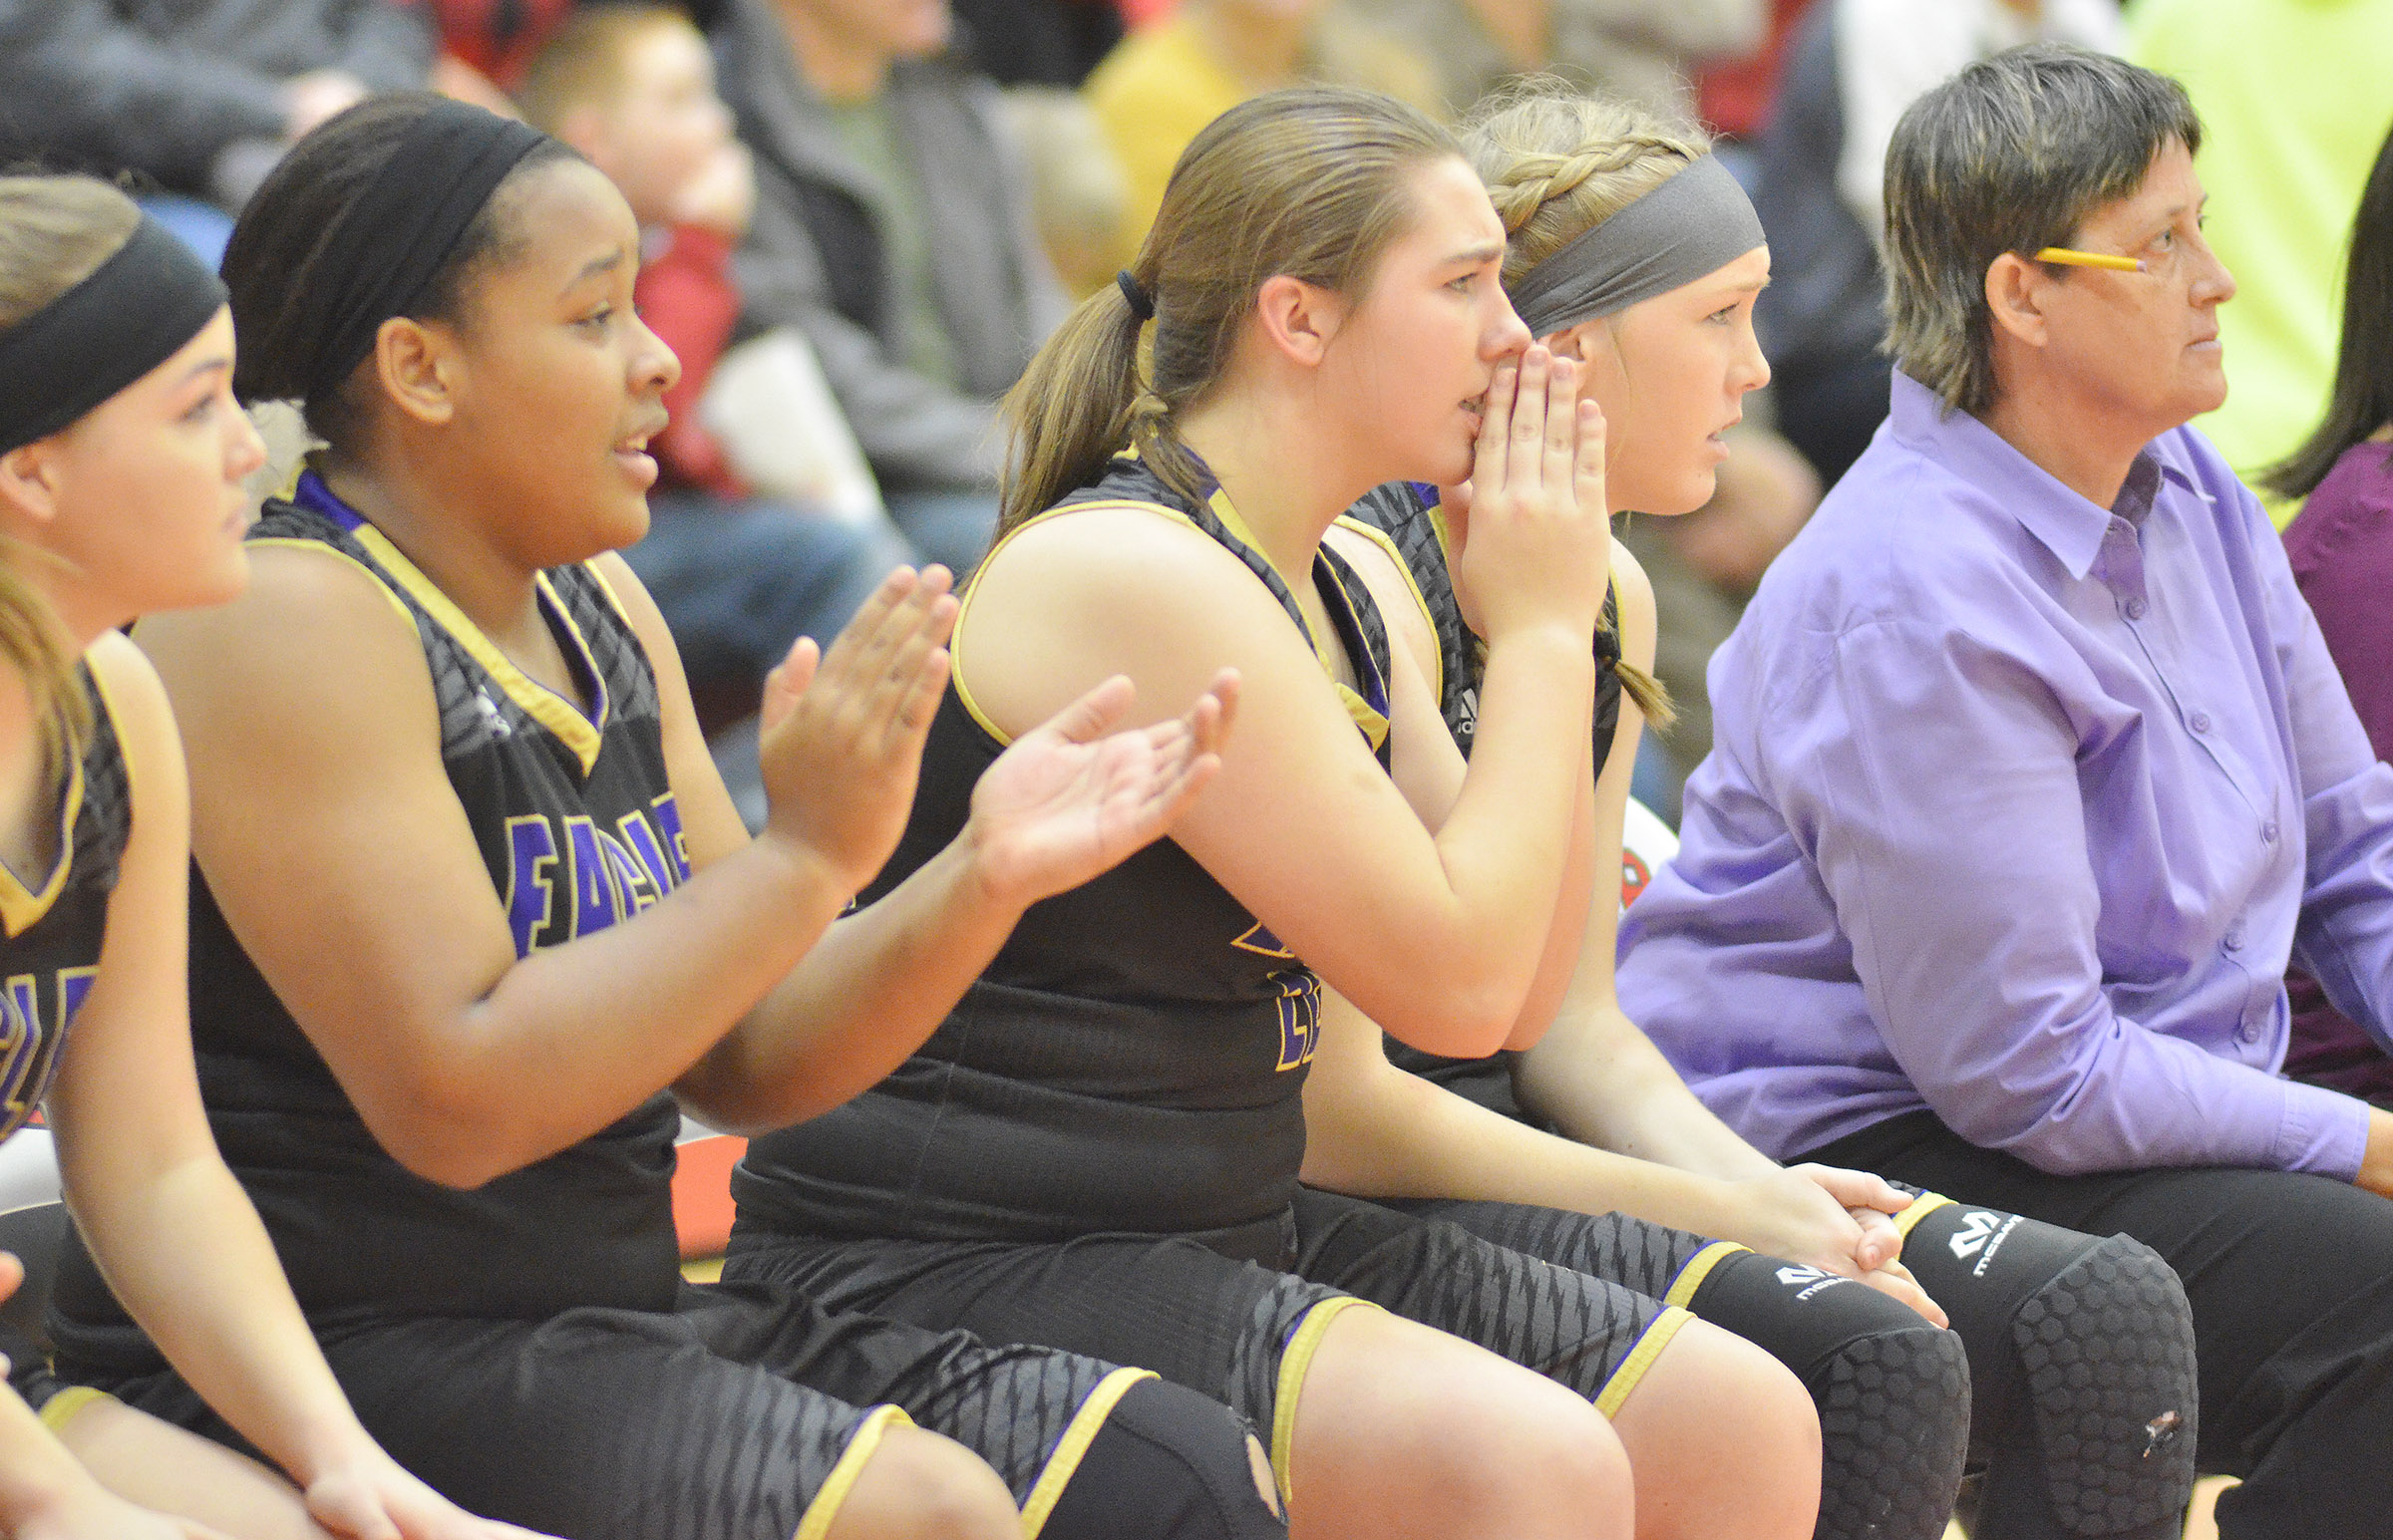 CHS freshman Abi Wiedewitsch, center, and her teammates watch as the Lady Eagles defeat Taylor County.